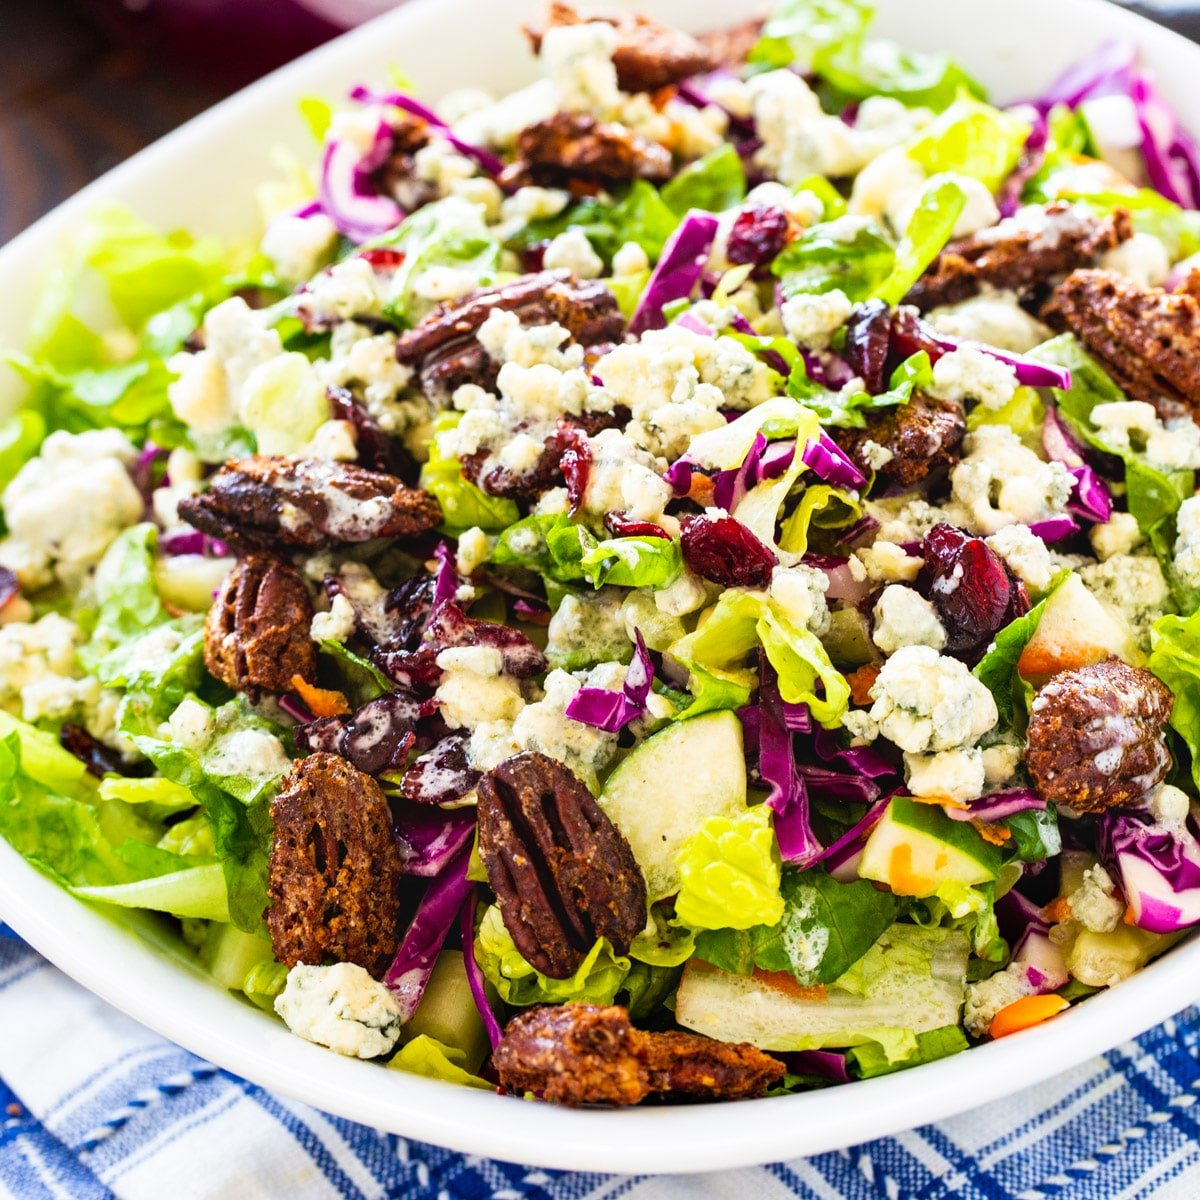 Blue CHeese Chopped Salad topped with Craisins and Pecans in a large white bowl.